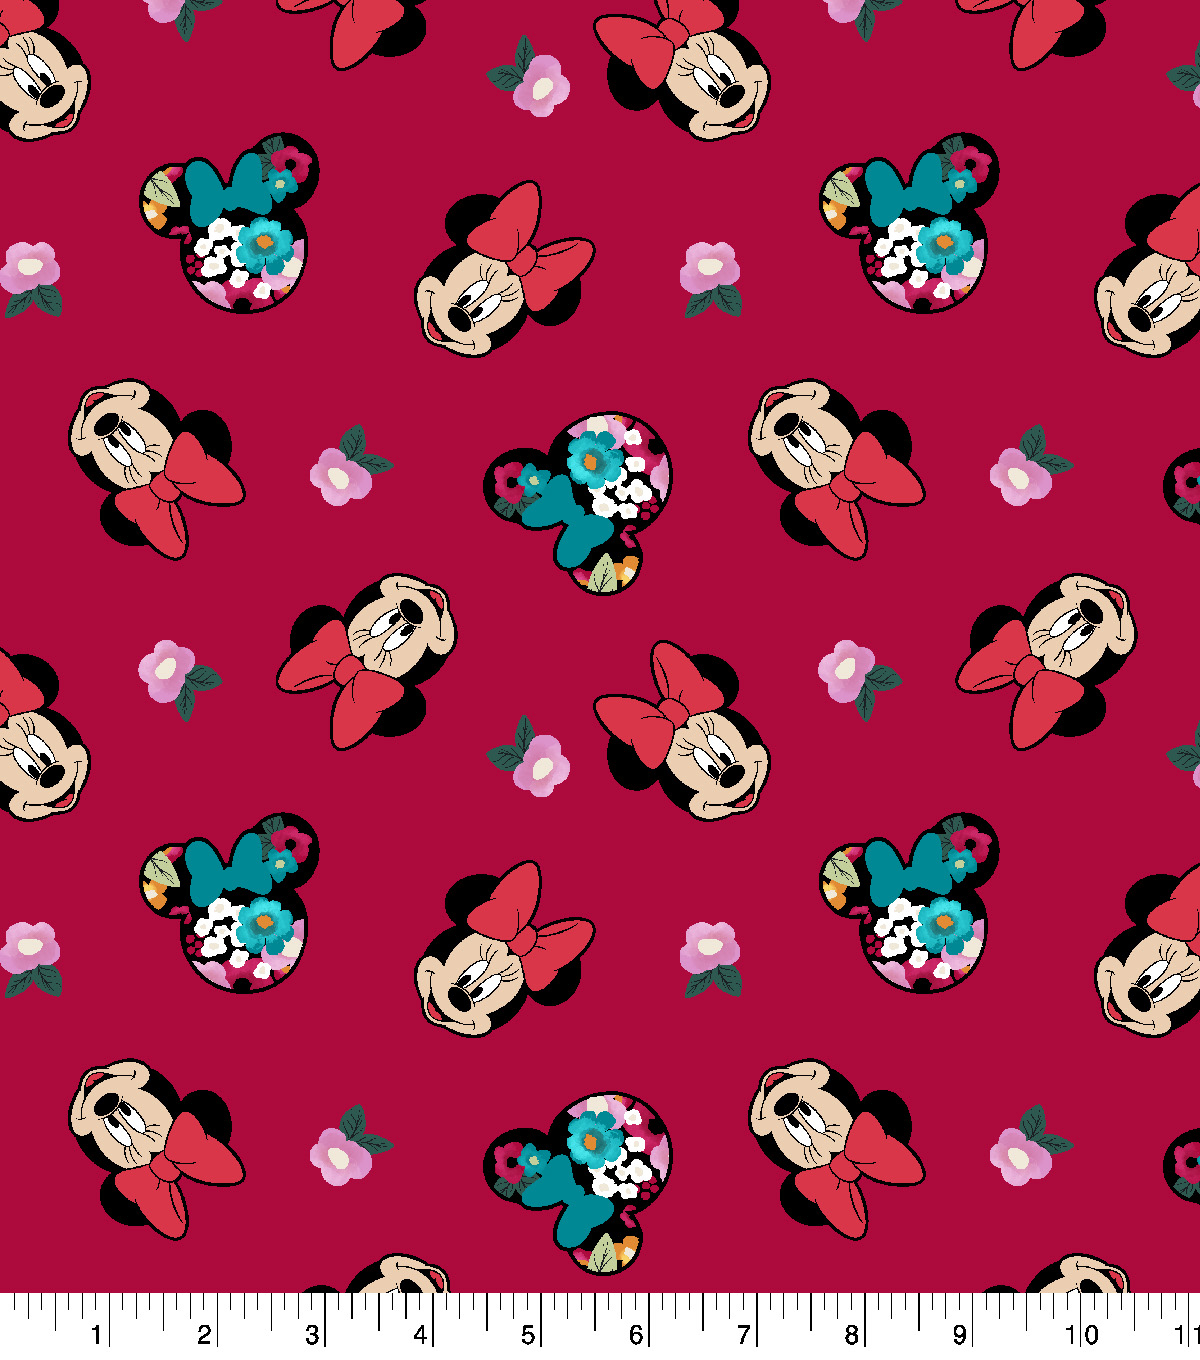 Disney Minnie Mouse Cotton Fabric -Head Toss